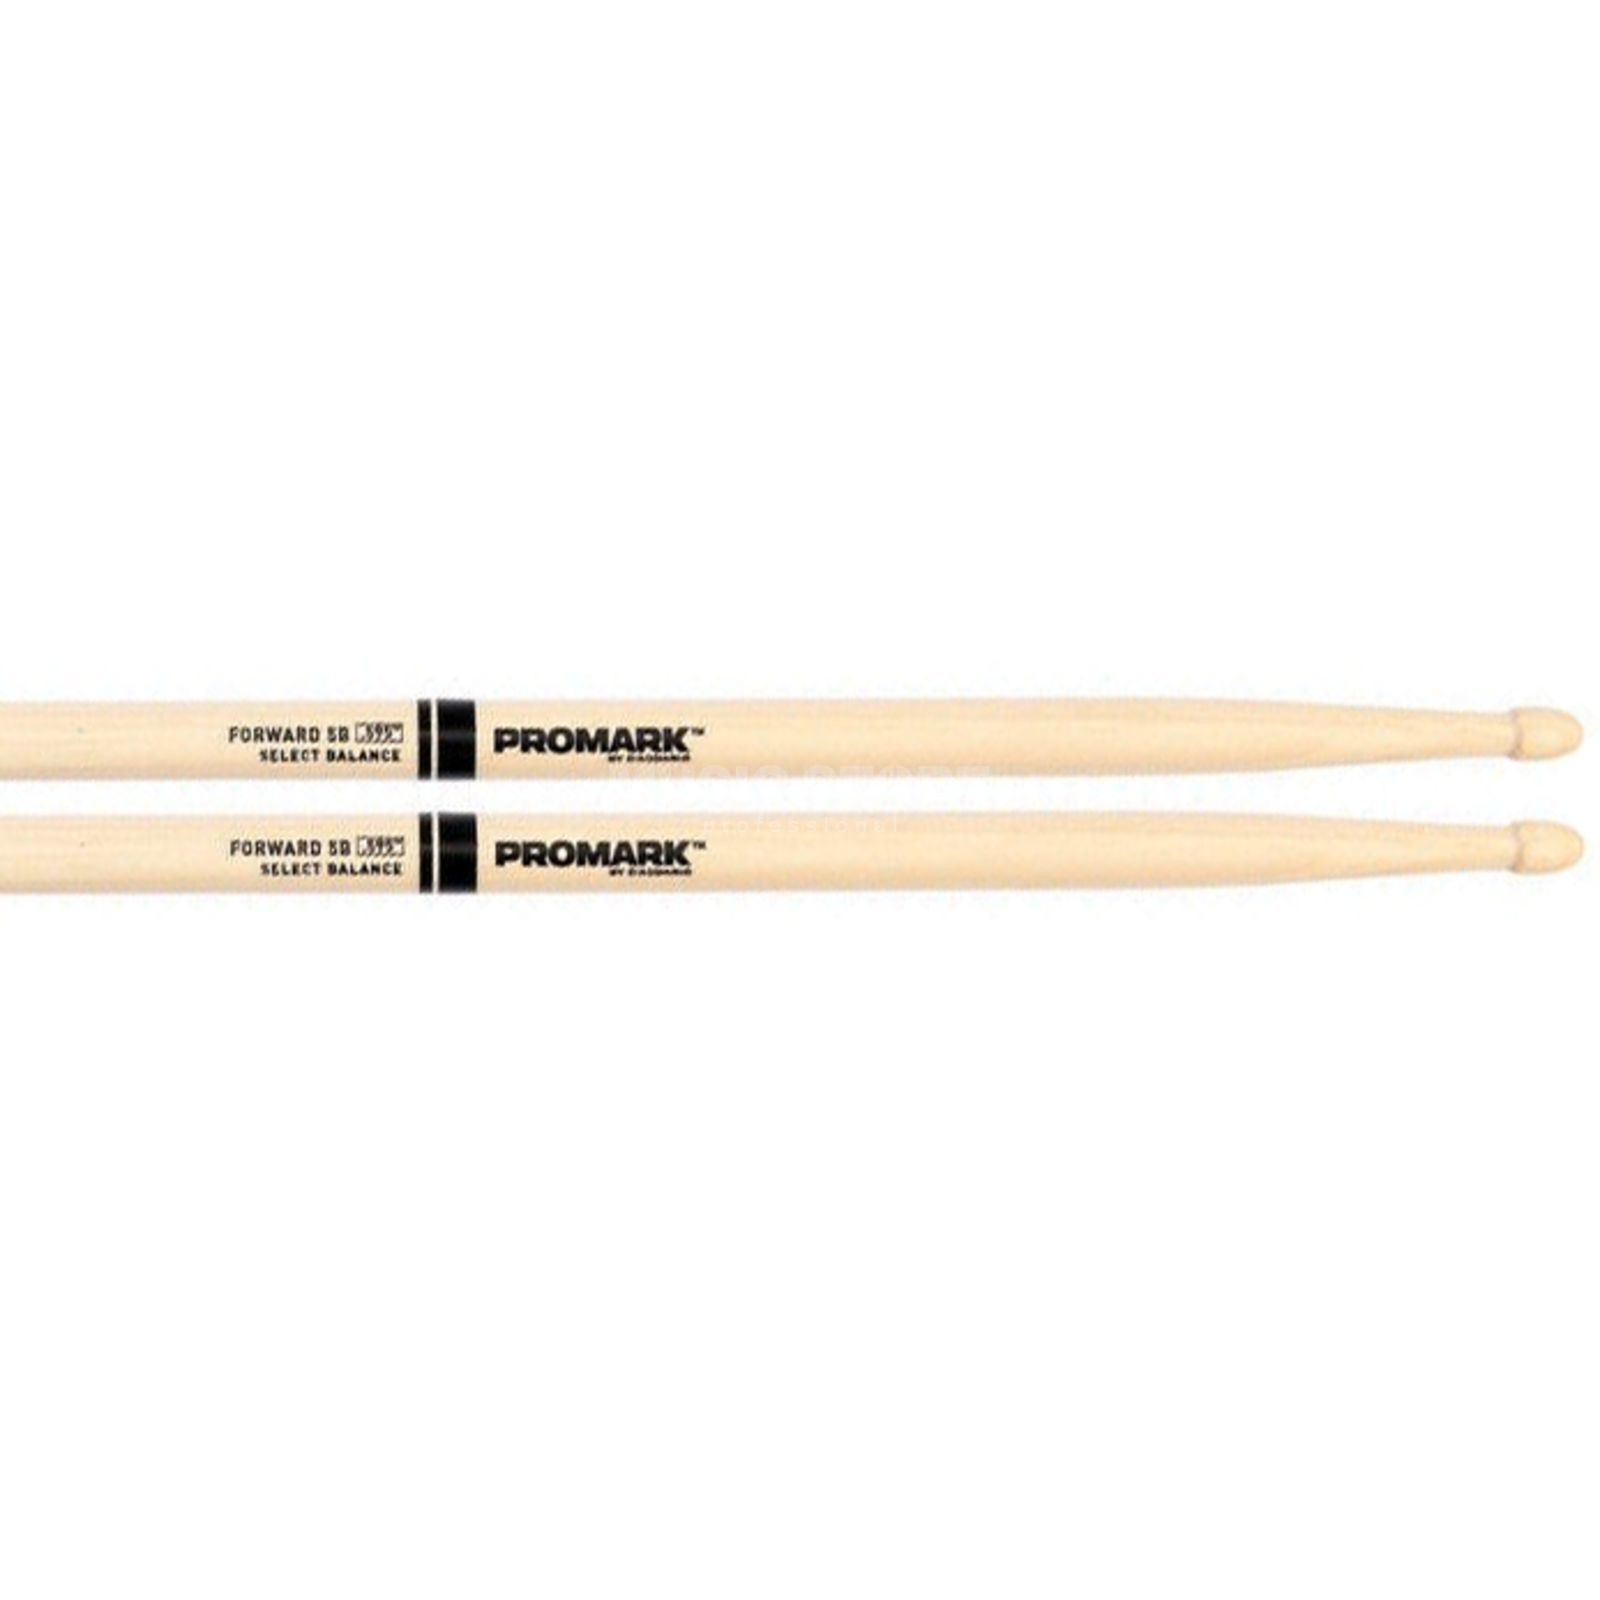 PRO-MARK Select Balance Sticks FBH595AW Forward Balance, Acorn Tip Productafbeelding